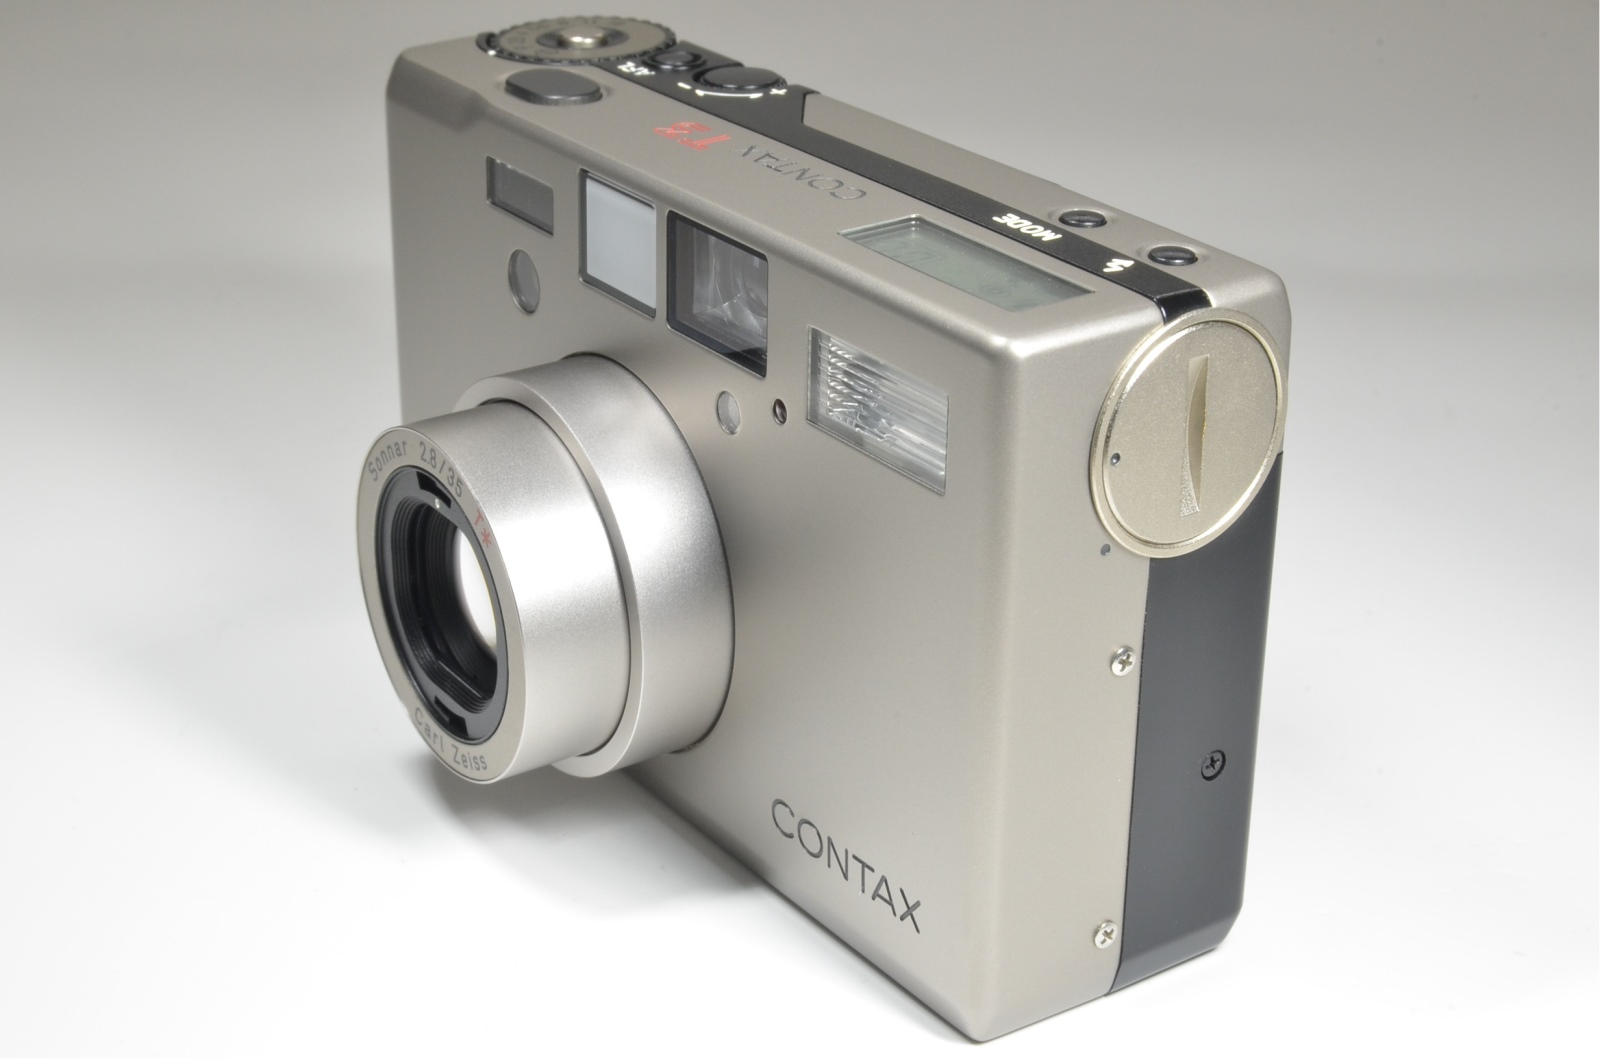 contax t3 point & shoot 35mm film camera in boxed from japan